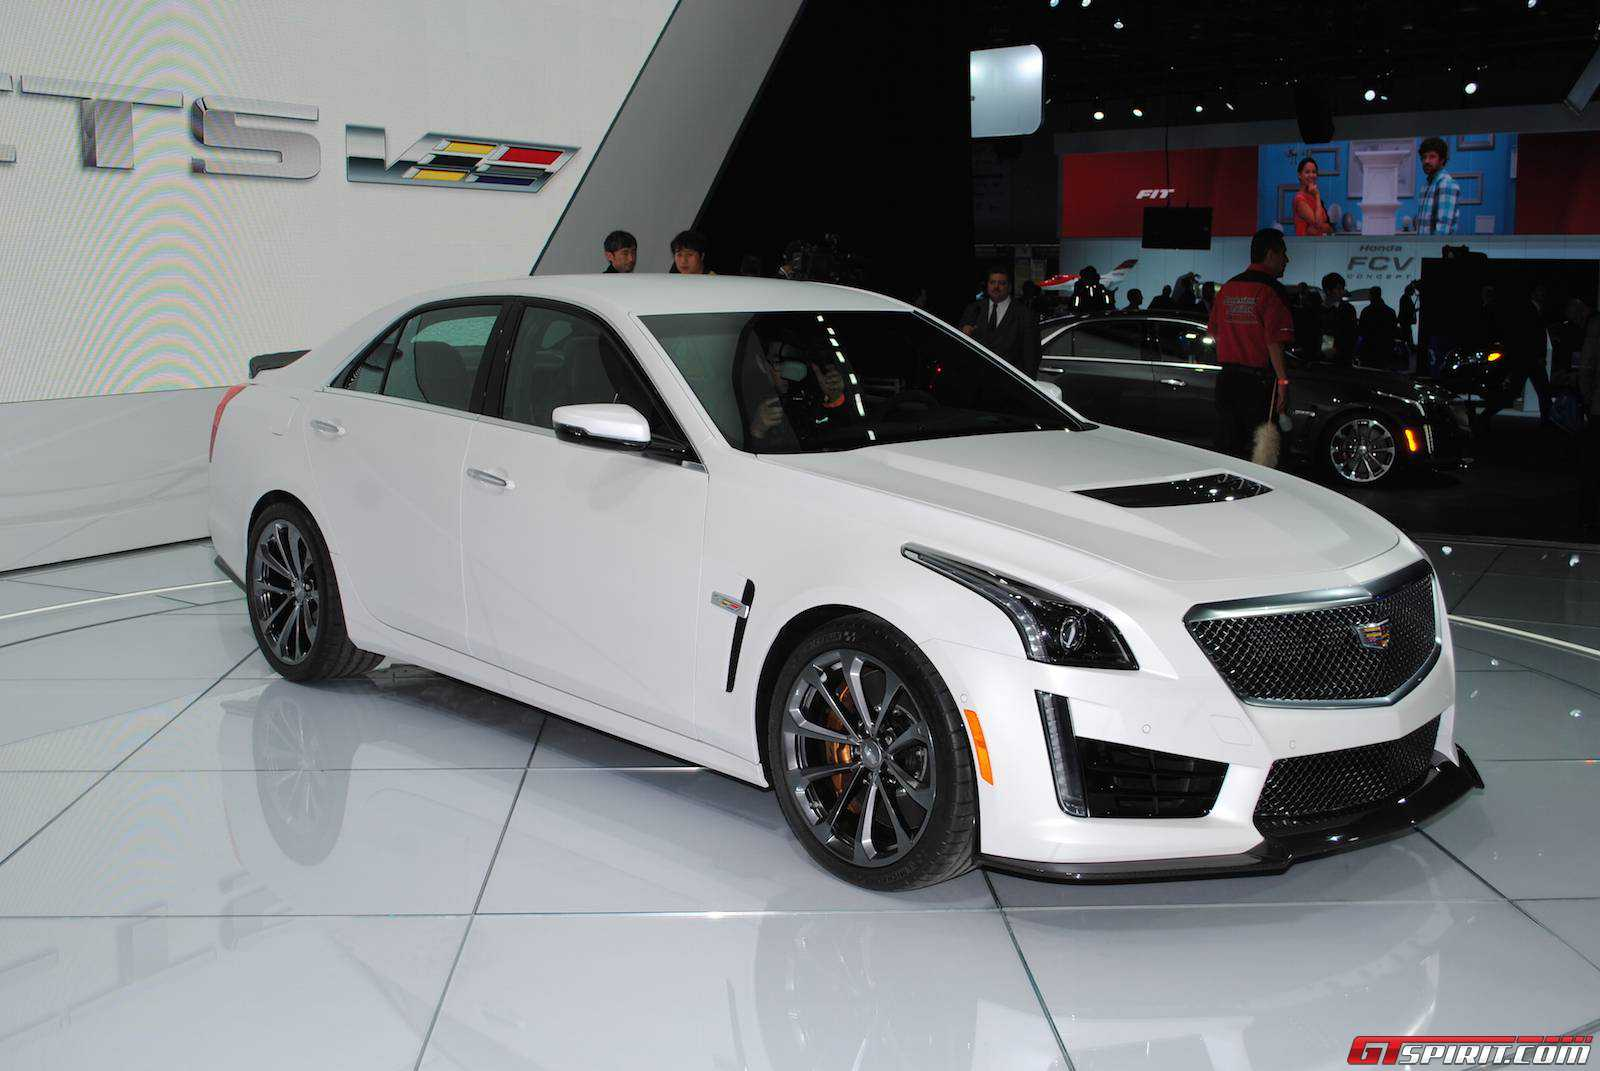 v sedan ats price cadillac cts hennessey vehicles performance